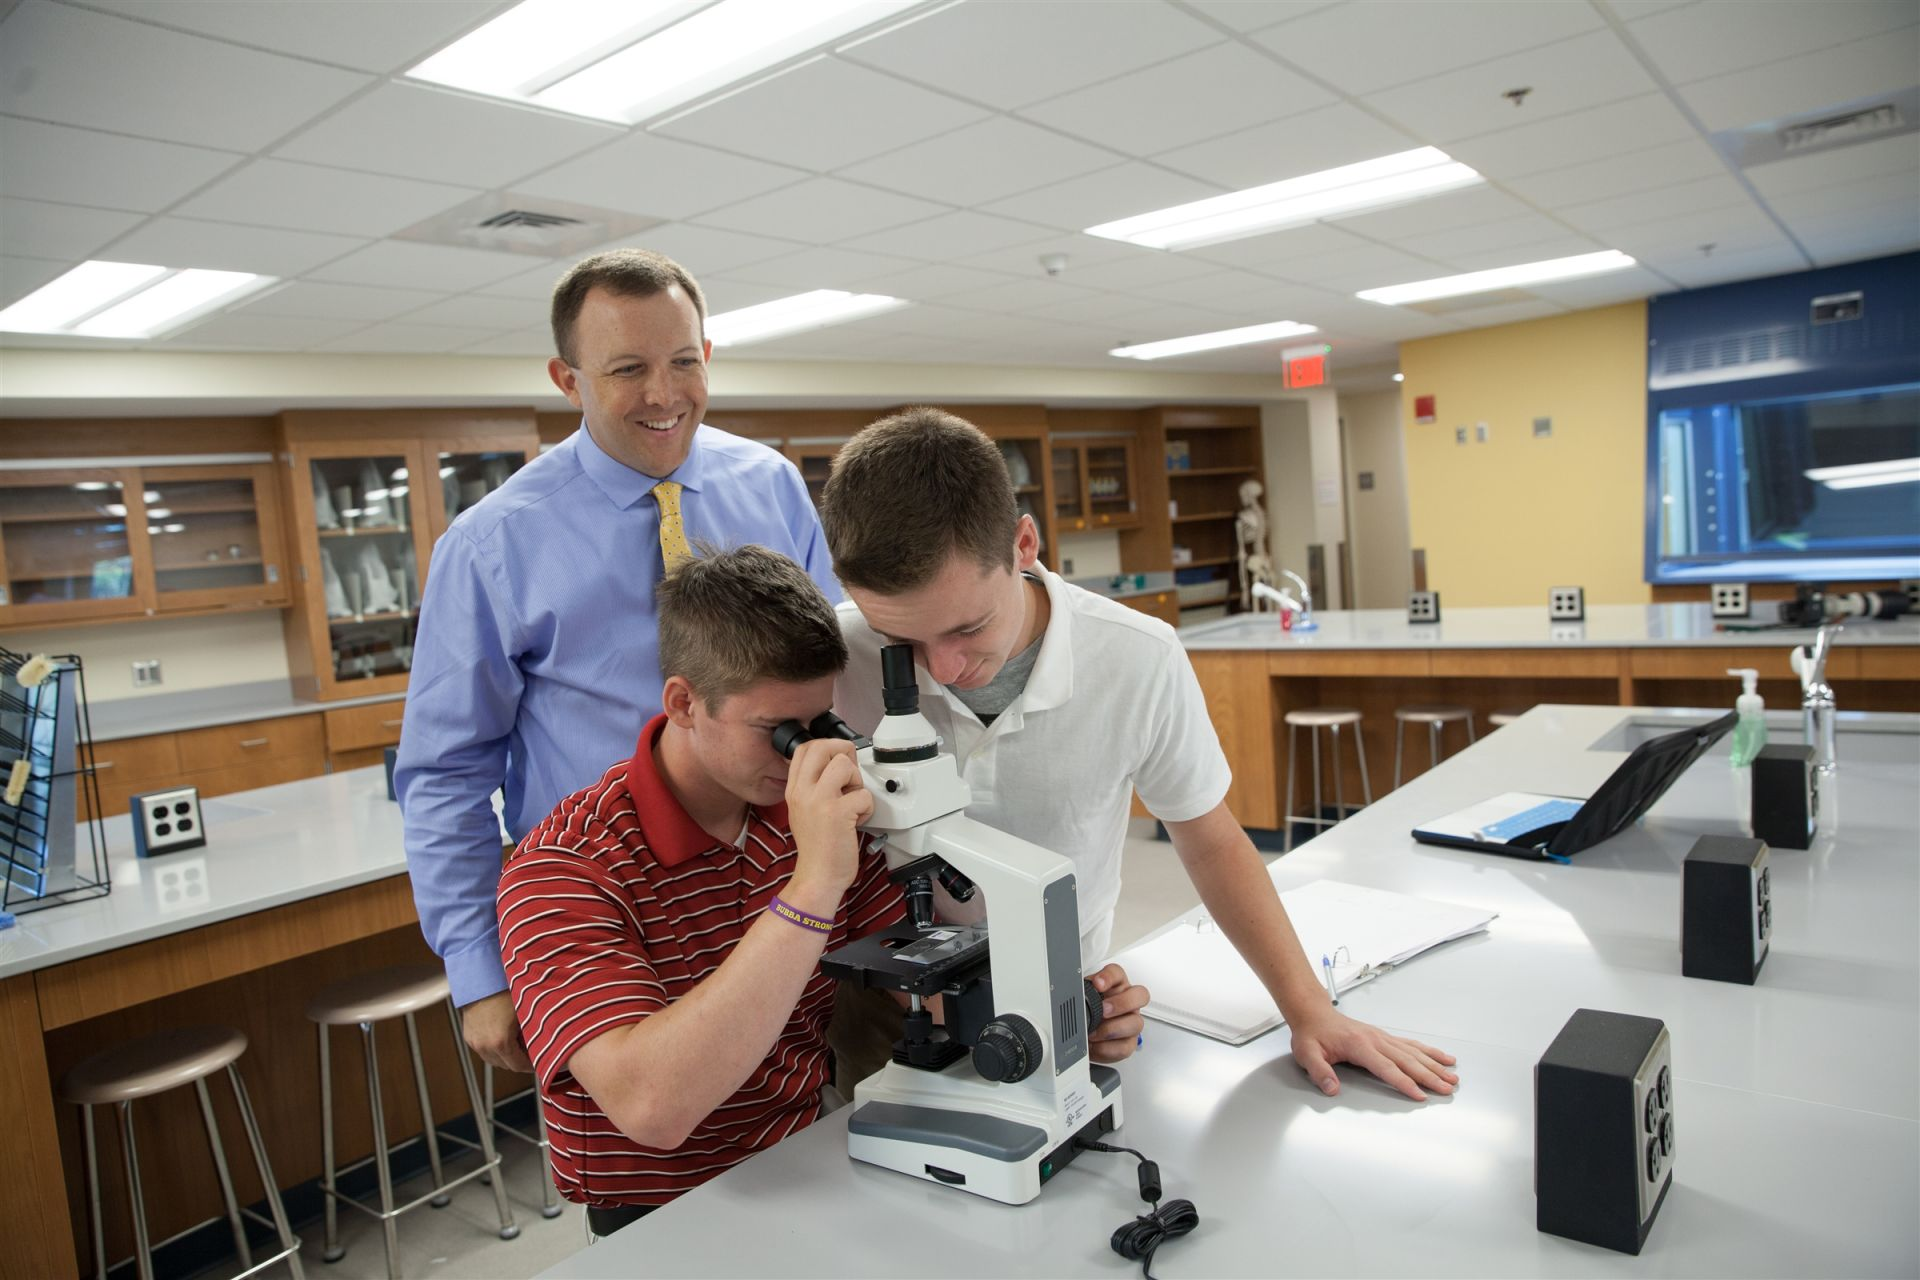 There are 5 science labs on the Xaverian campus.